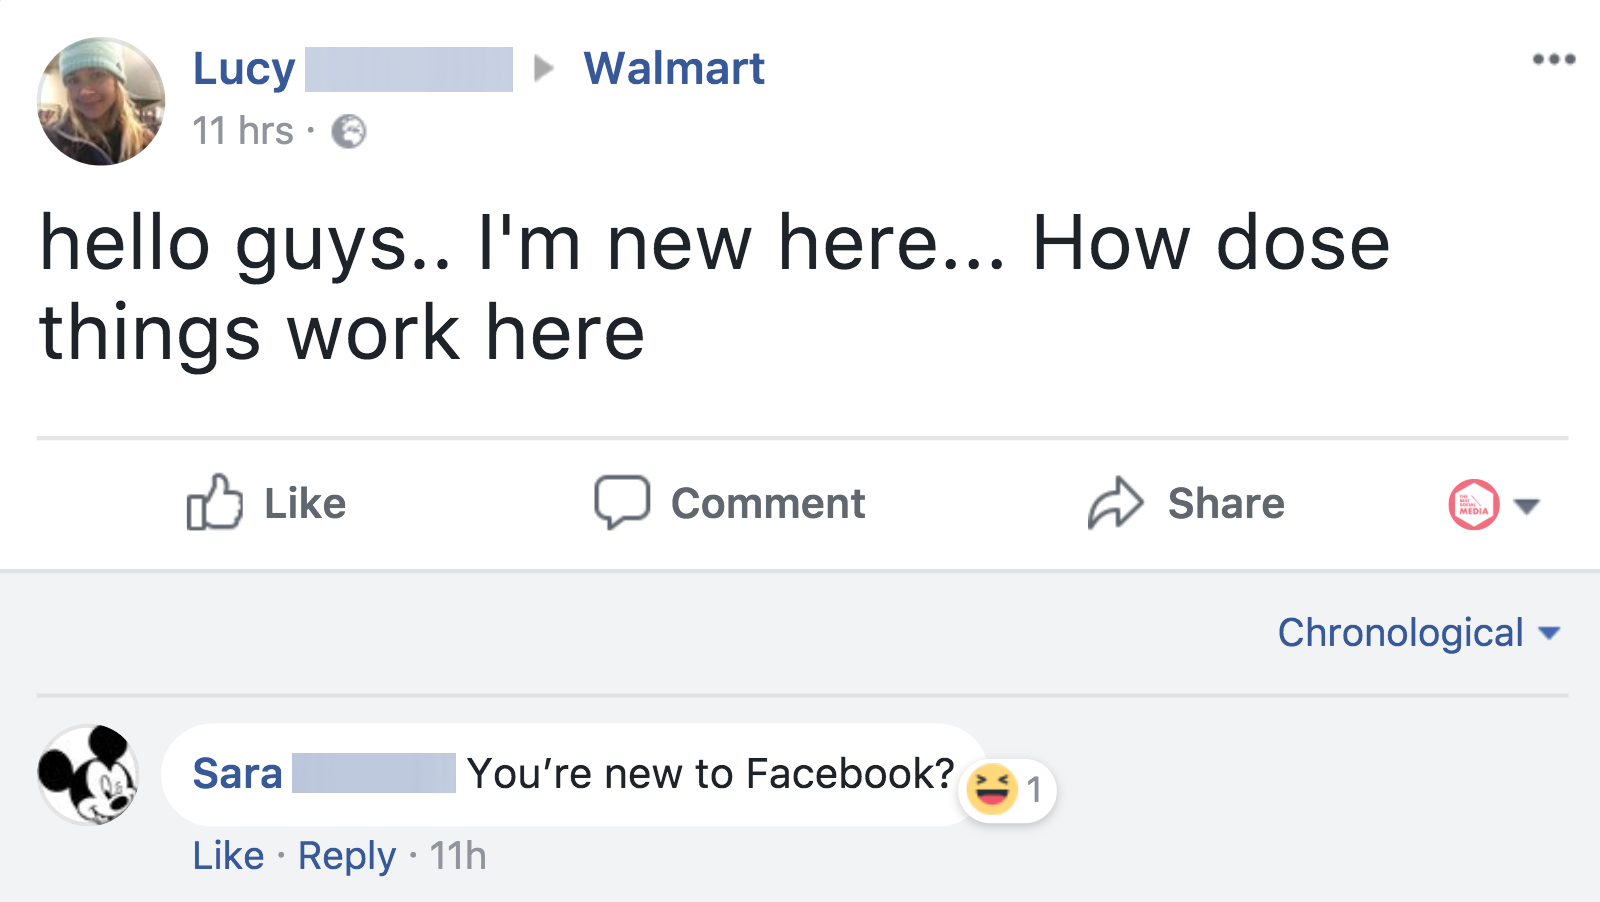 Hot Tip If Youre New To Facebook Just Ask The Official Walmart Page For Help